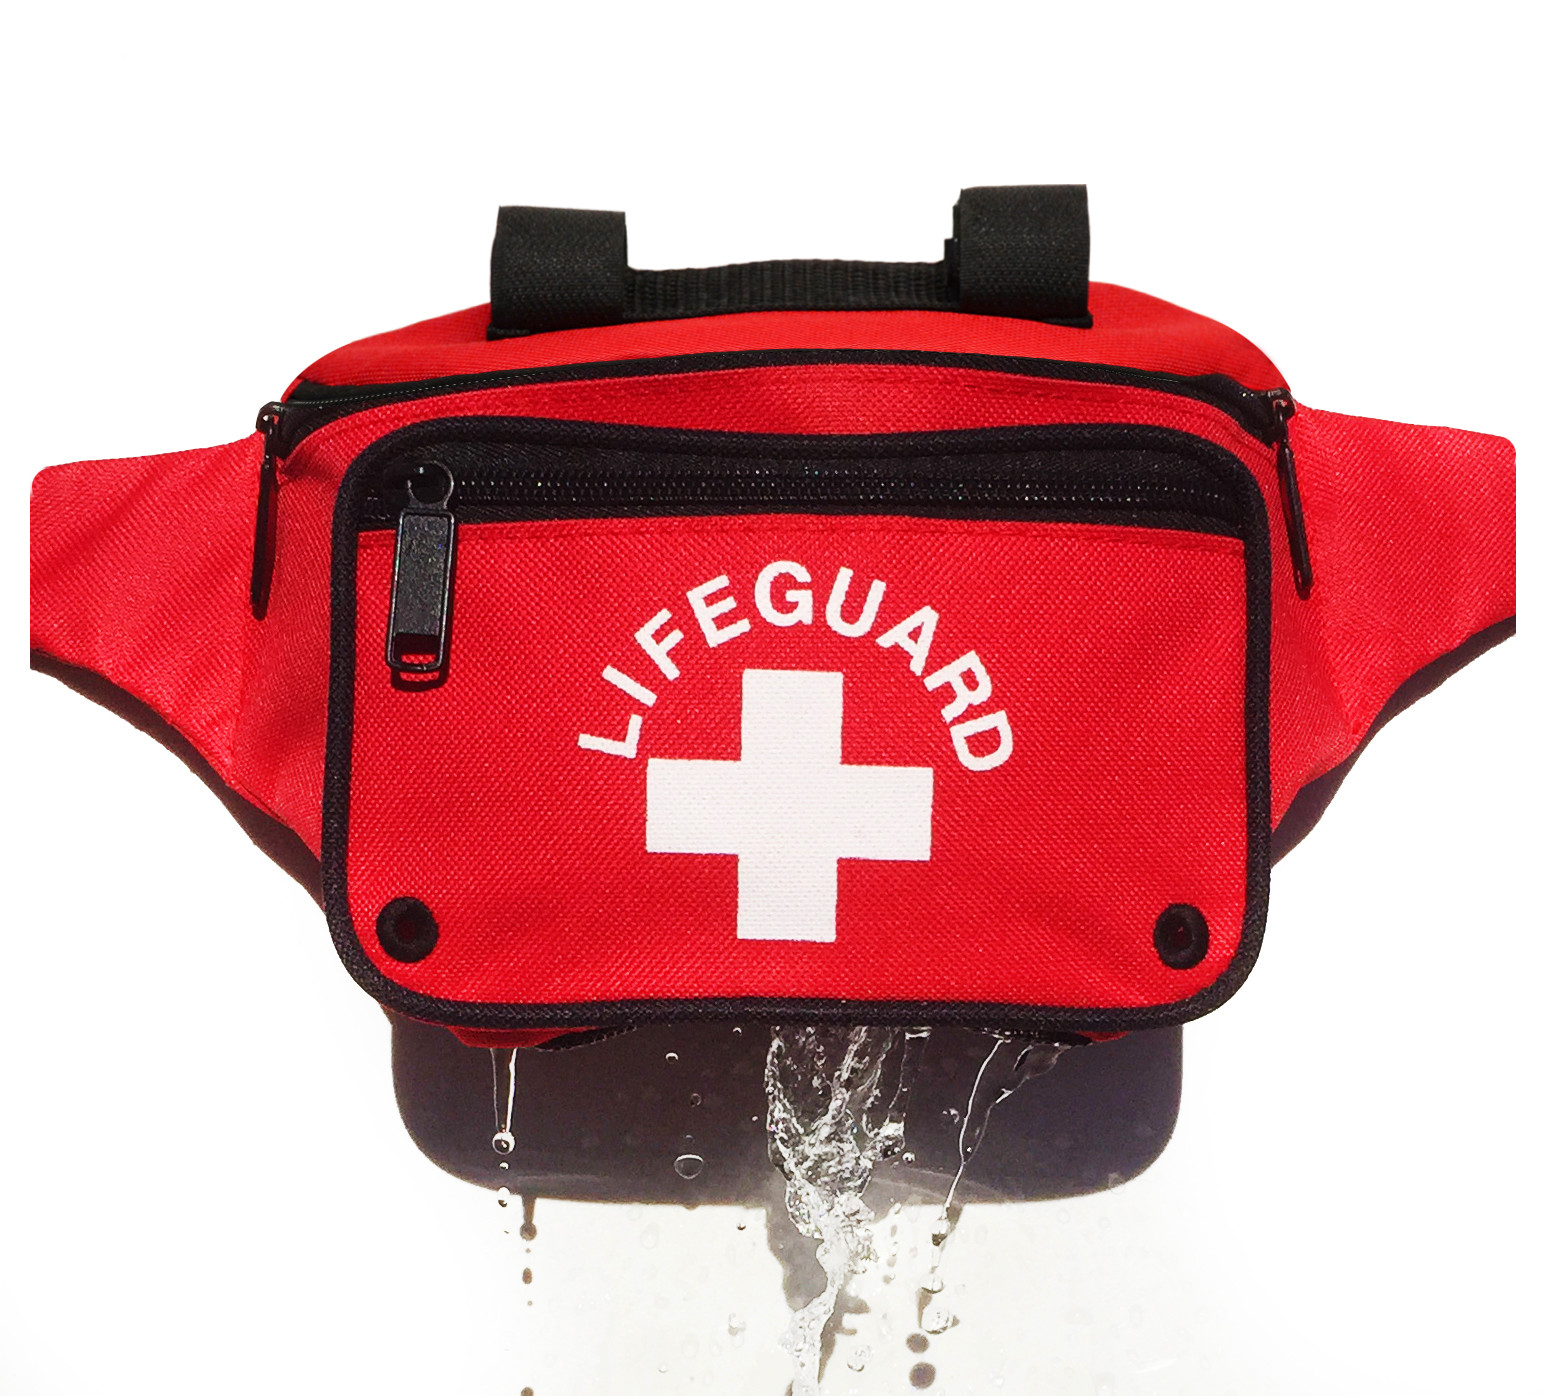 Draineasy 174 Lifeguard Fanny Pack Lifeguard Hip Pack